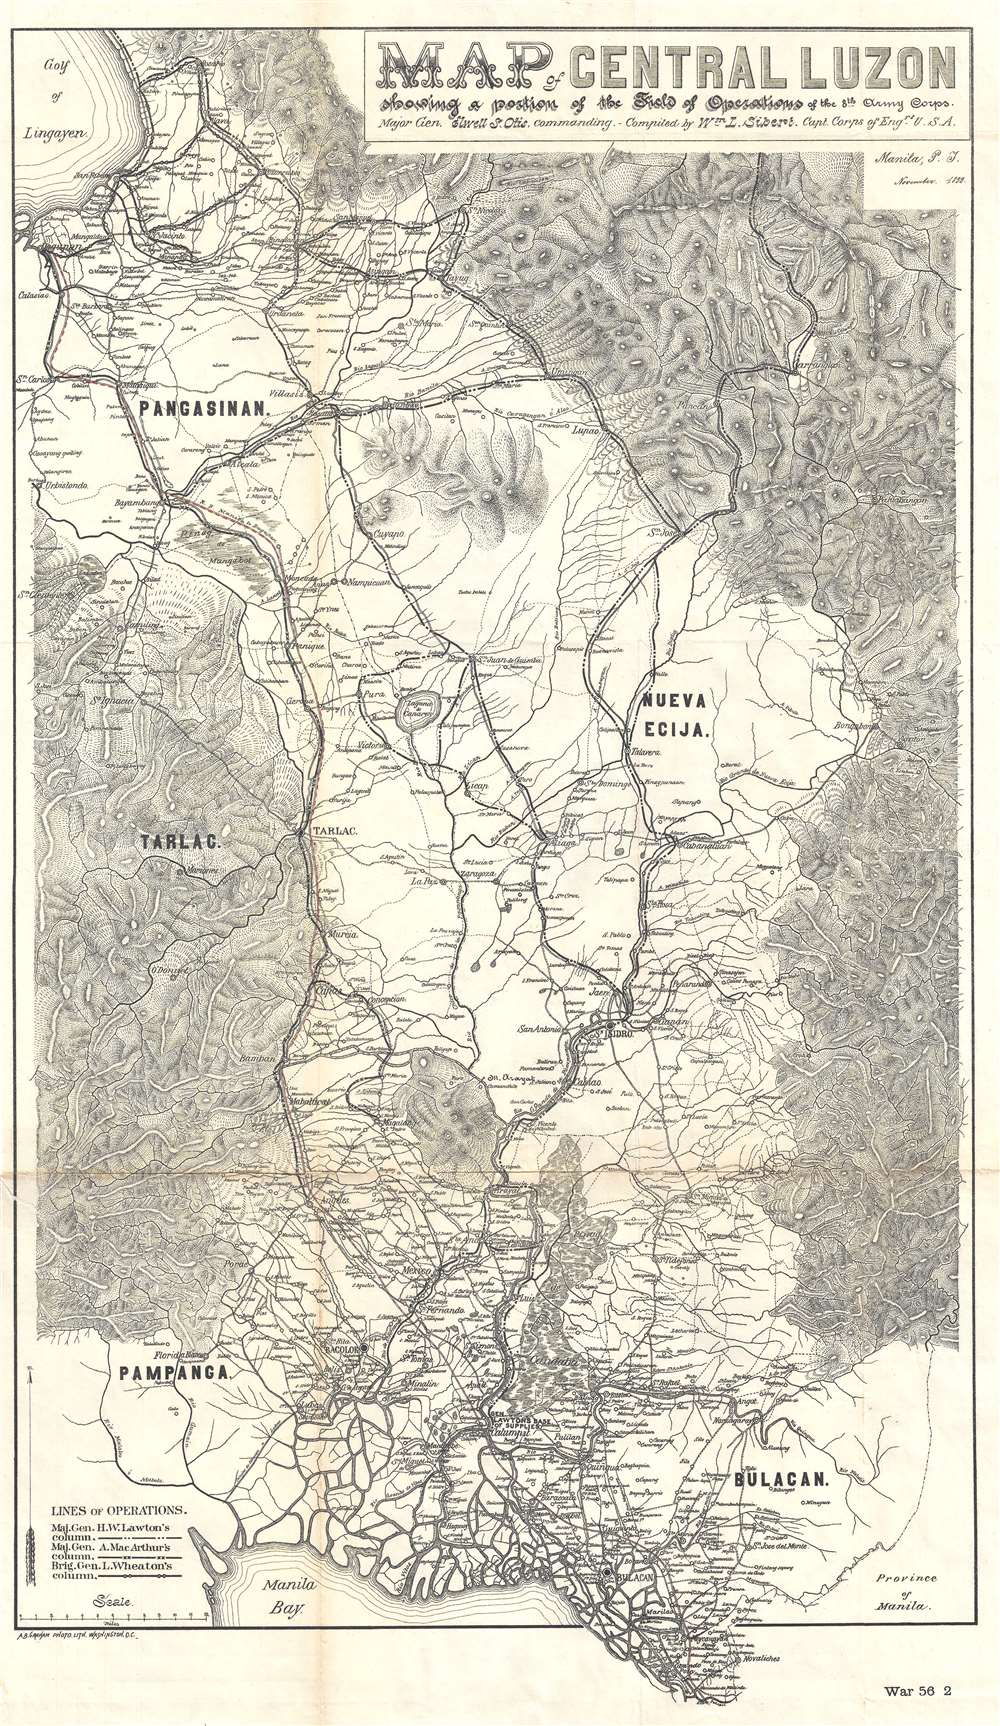 1899 Otis Map of Central Luzon, Philippines, during the Philippine-American War